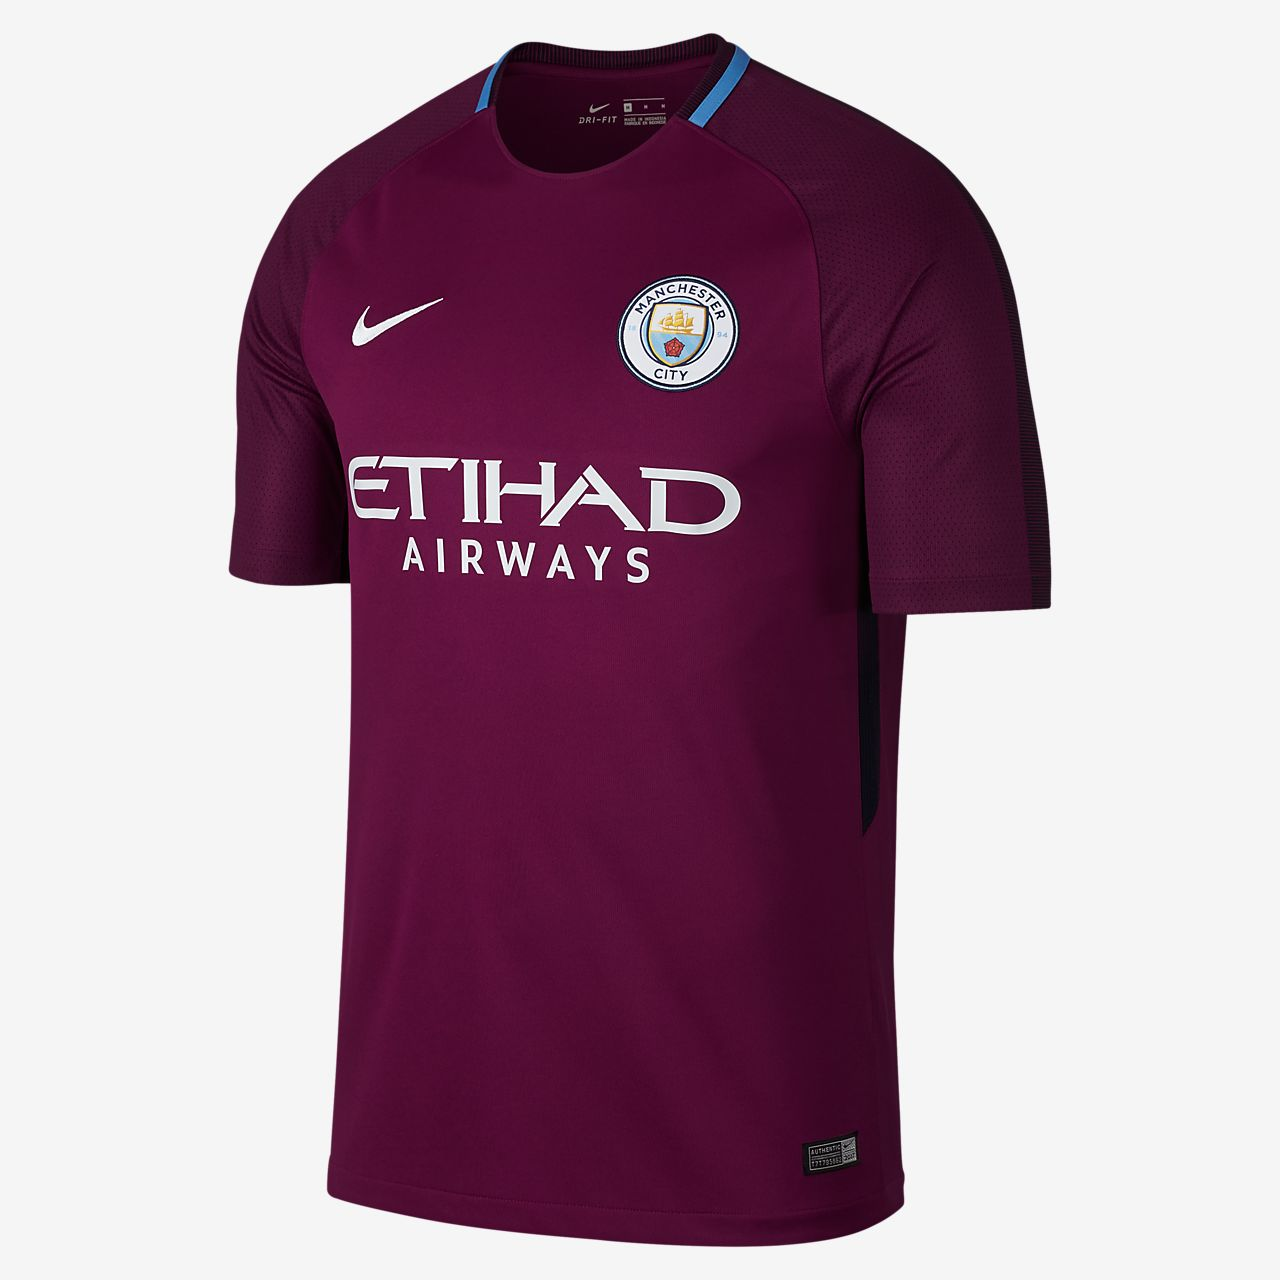 ... 2017/18 Manchester City FC Stadium Away Men's Football Shirt